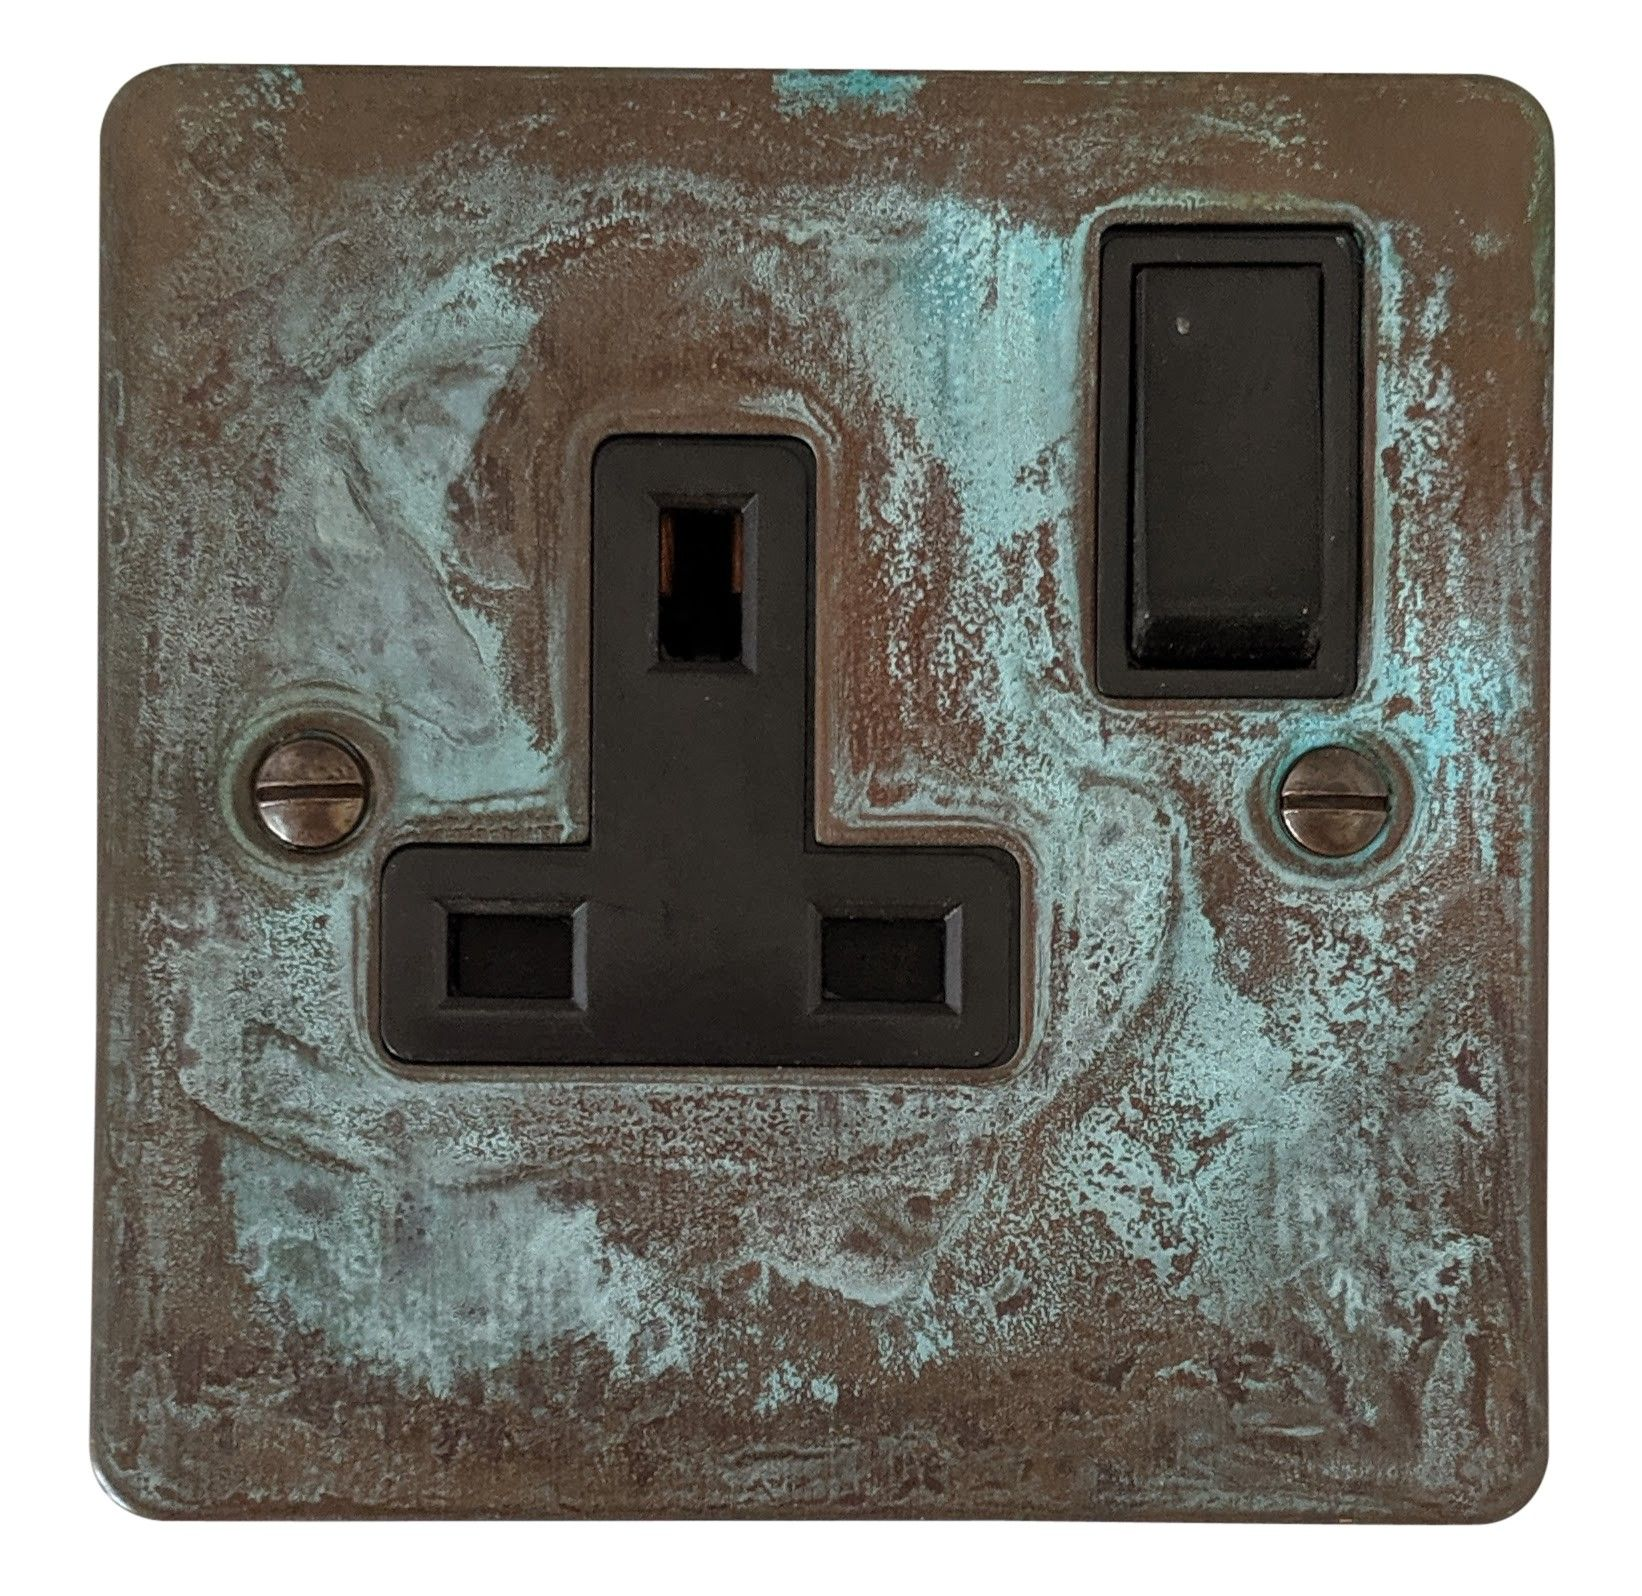 G&H FV9B Flat Plate Verdigris 1 Gang Single 13A Switched Plug Socket